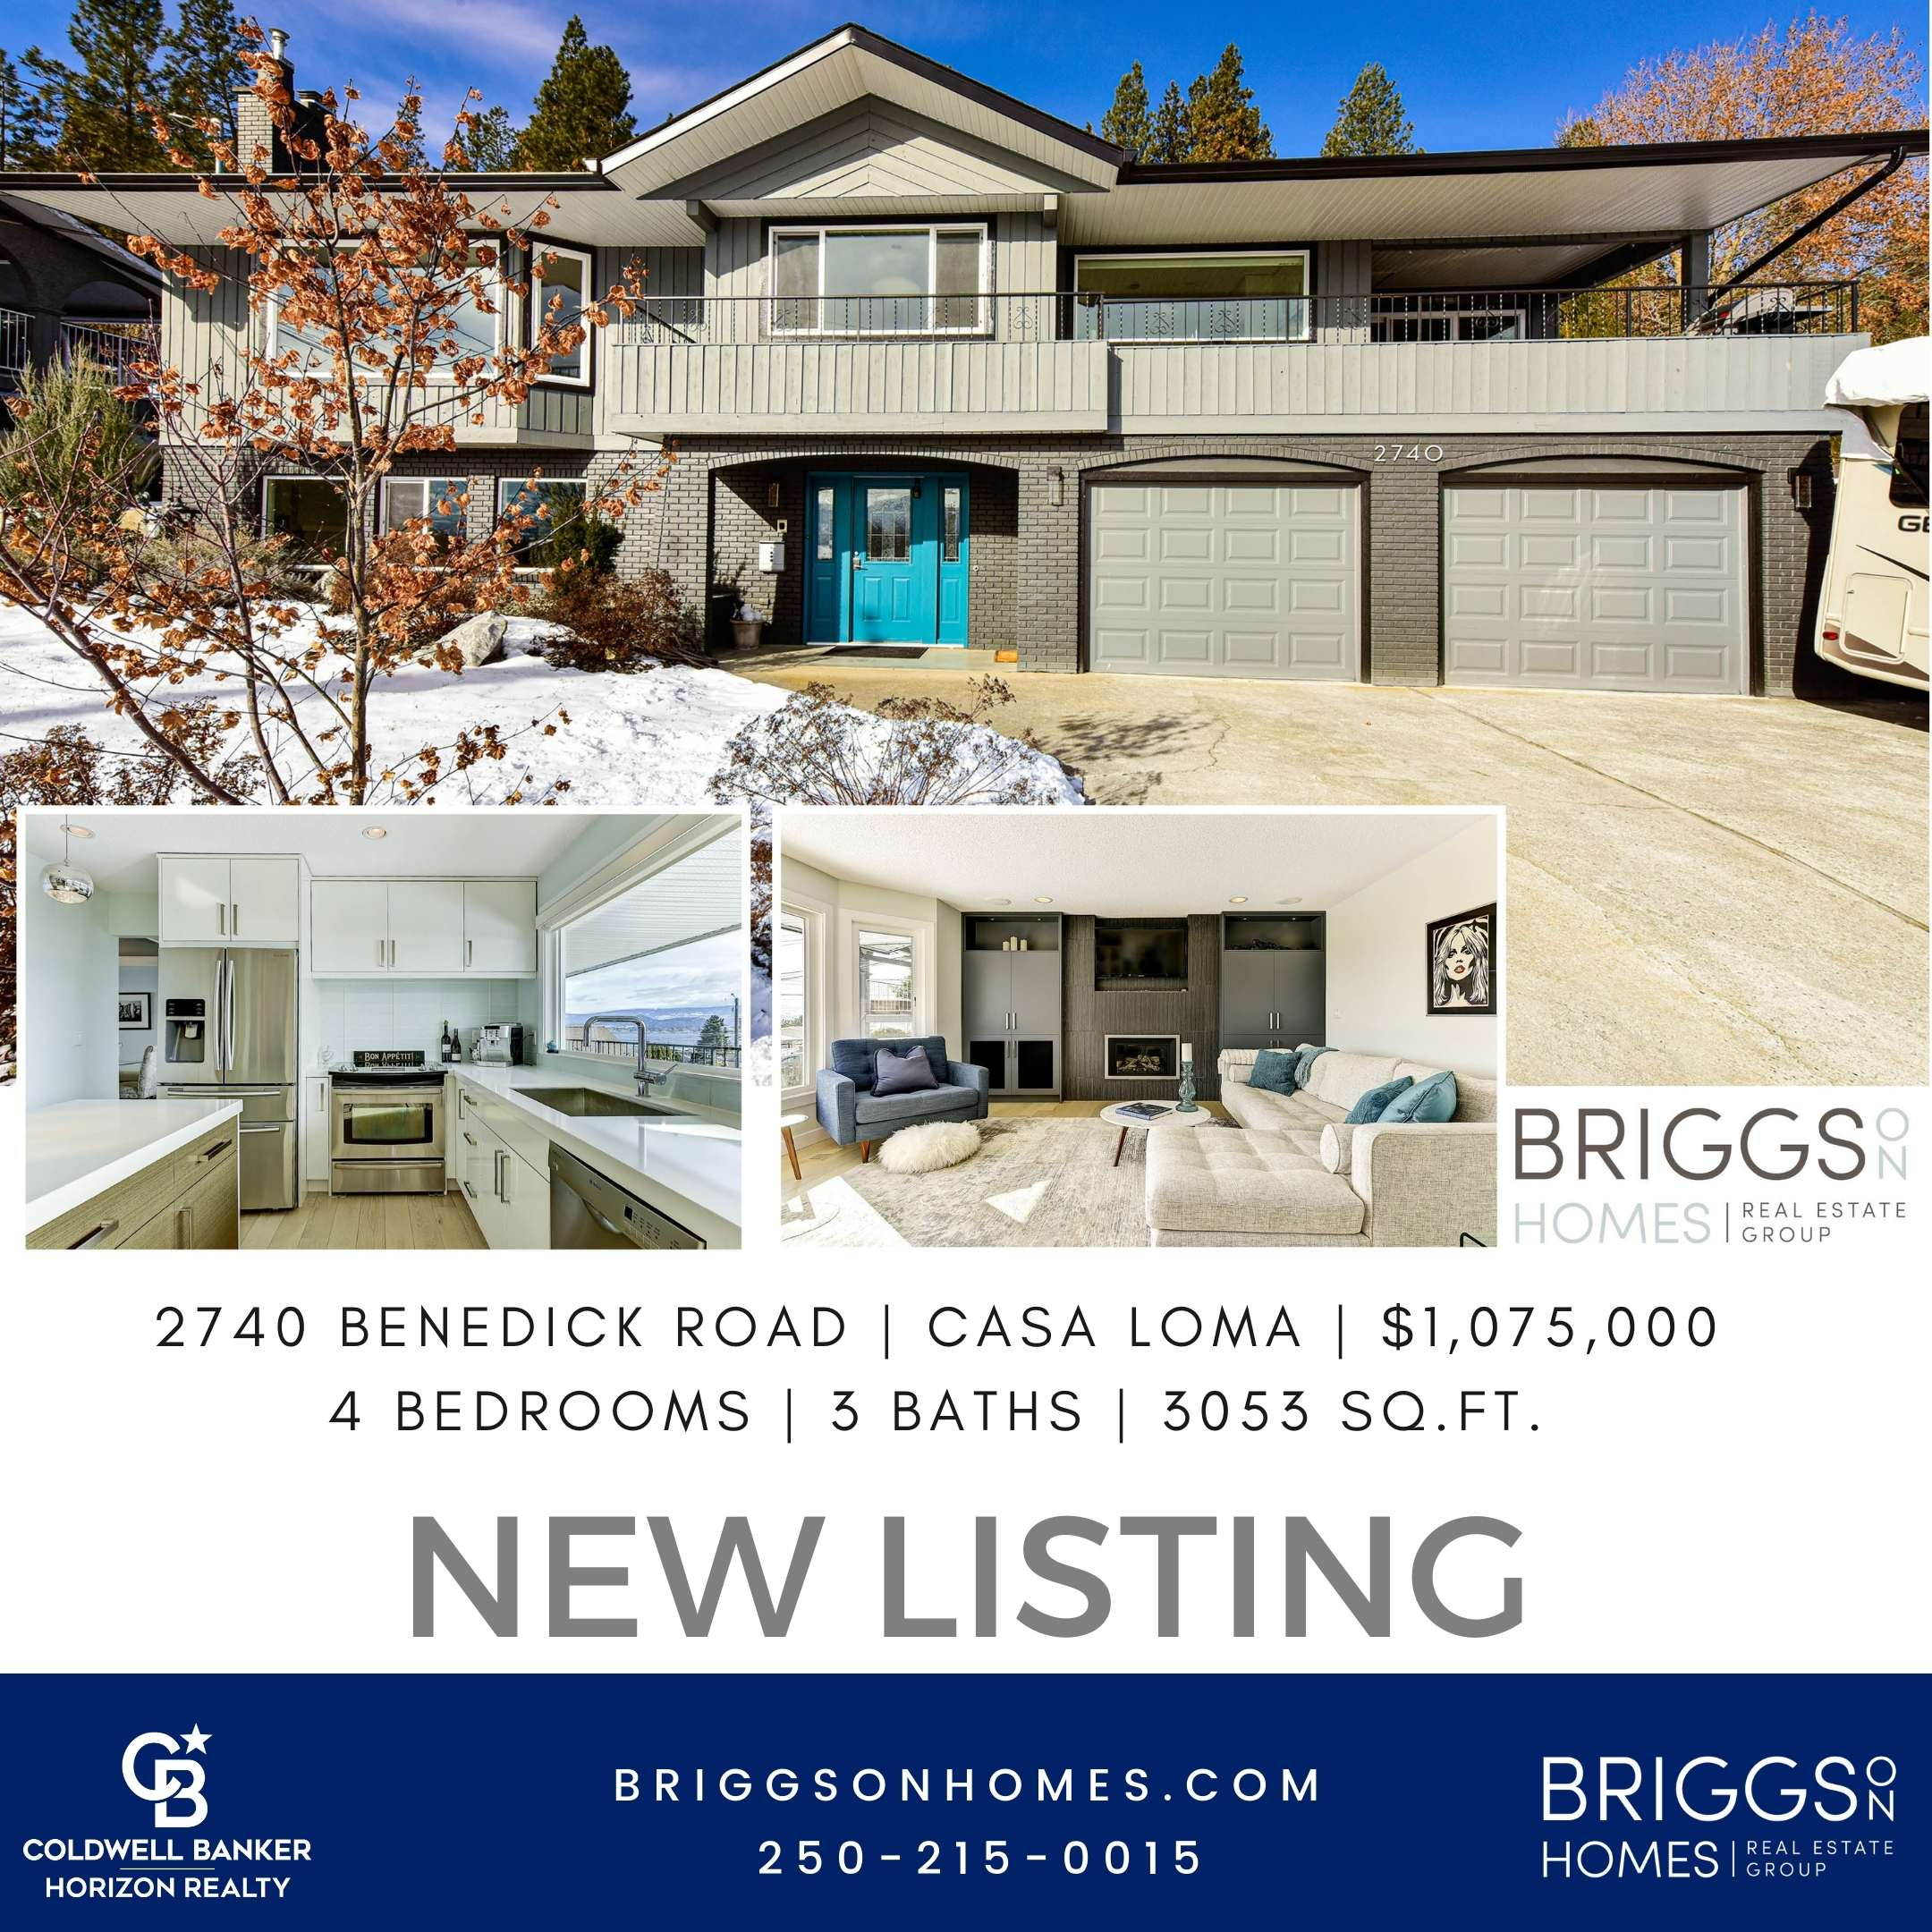 Just Listed 2740 Benedick Road